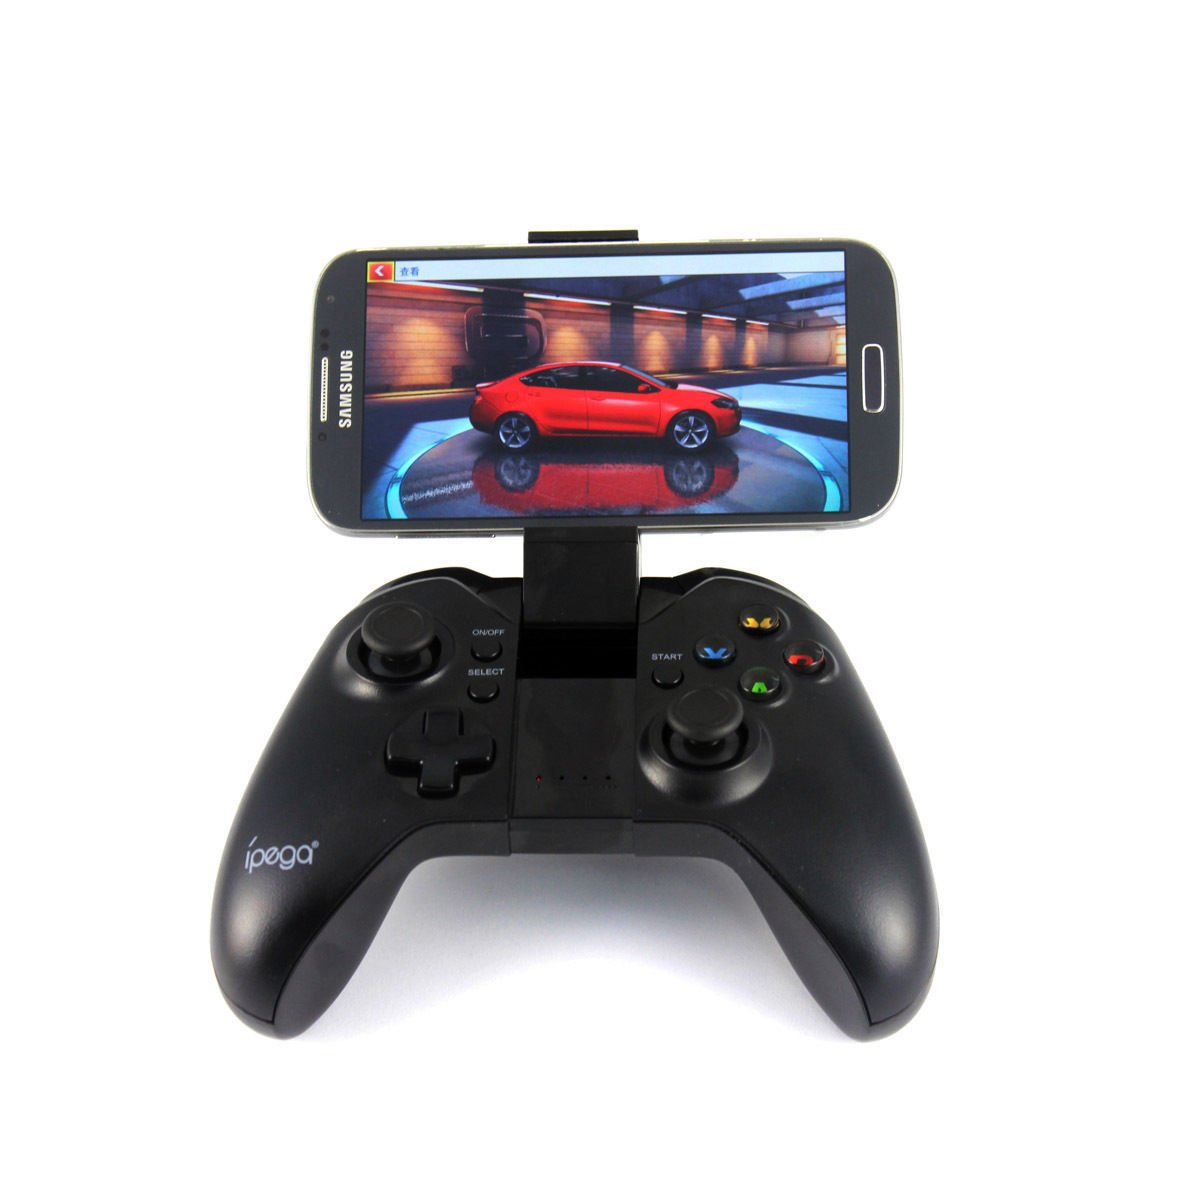 ess Bluetooth Gamepad Game Controller For IOS Mobile Phone Tablet PC